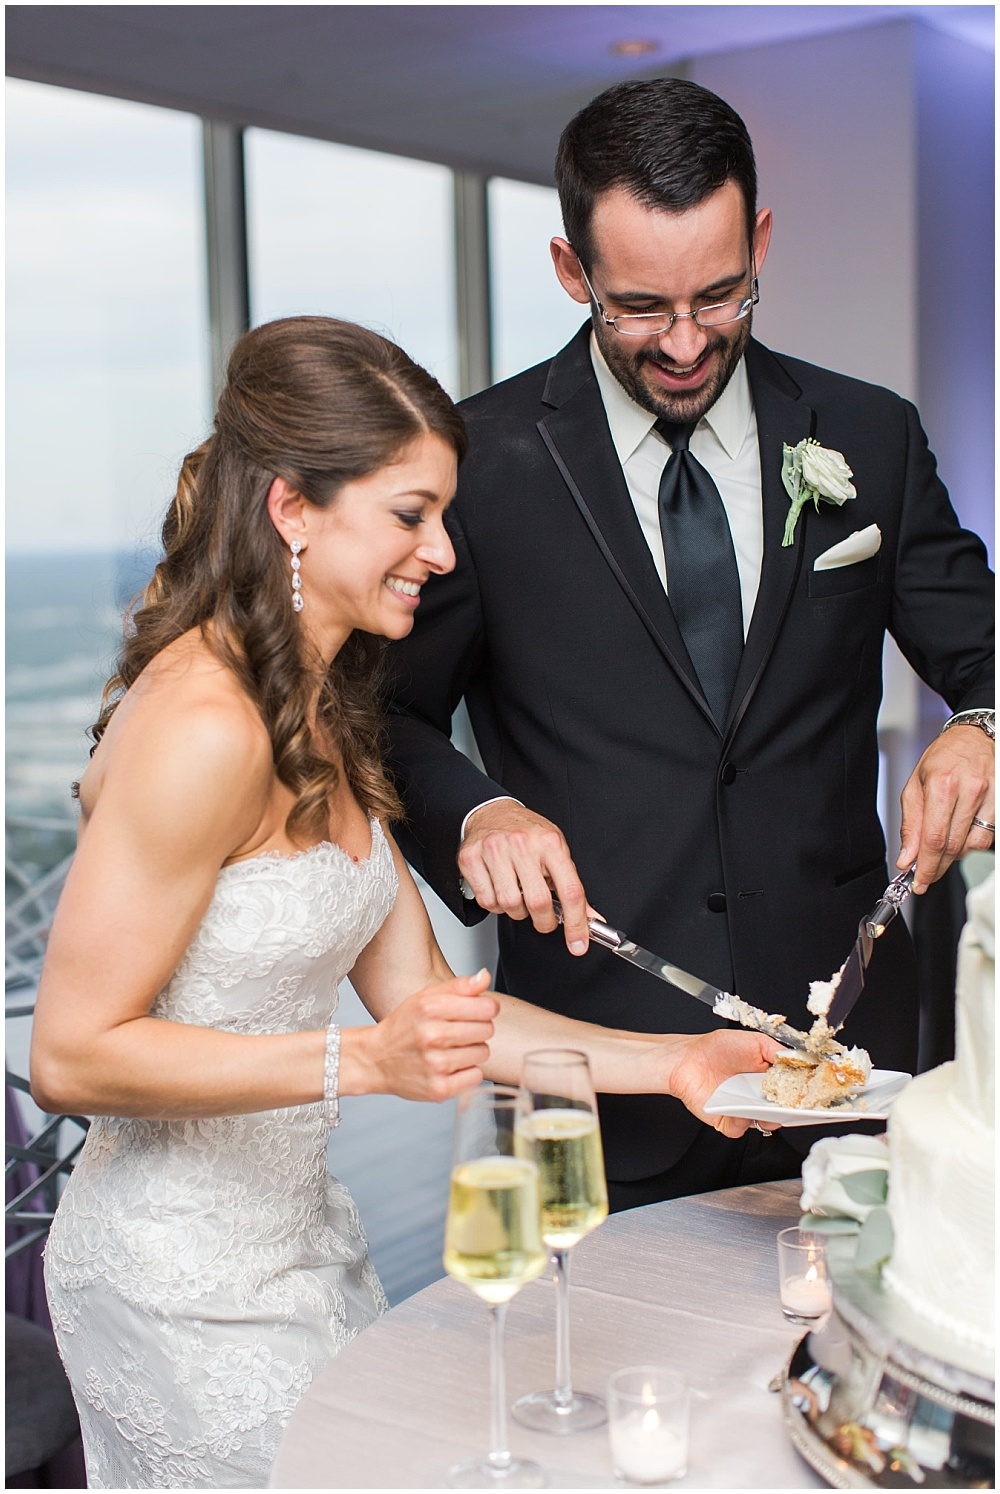 Bride and Groom cutting the cake | D'Amore Wedding by Ivan & Louise Images & Jessica Dum Wedding Coordination